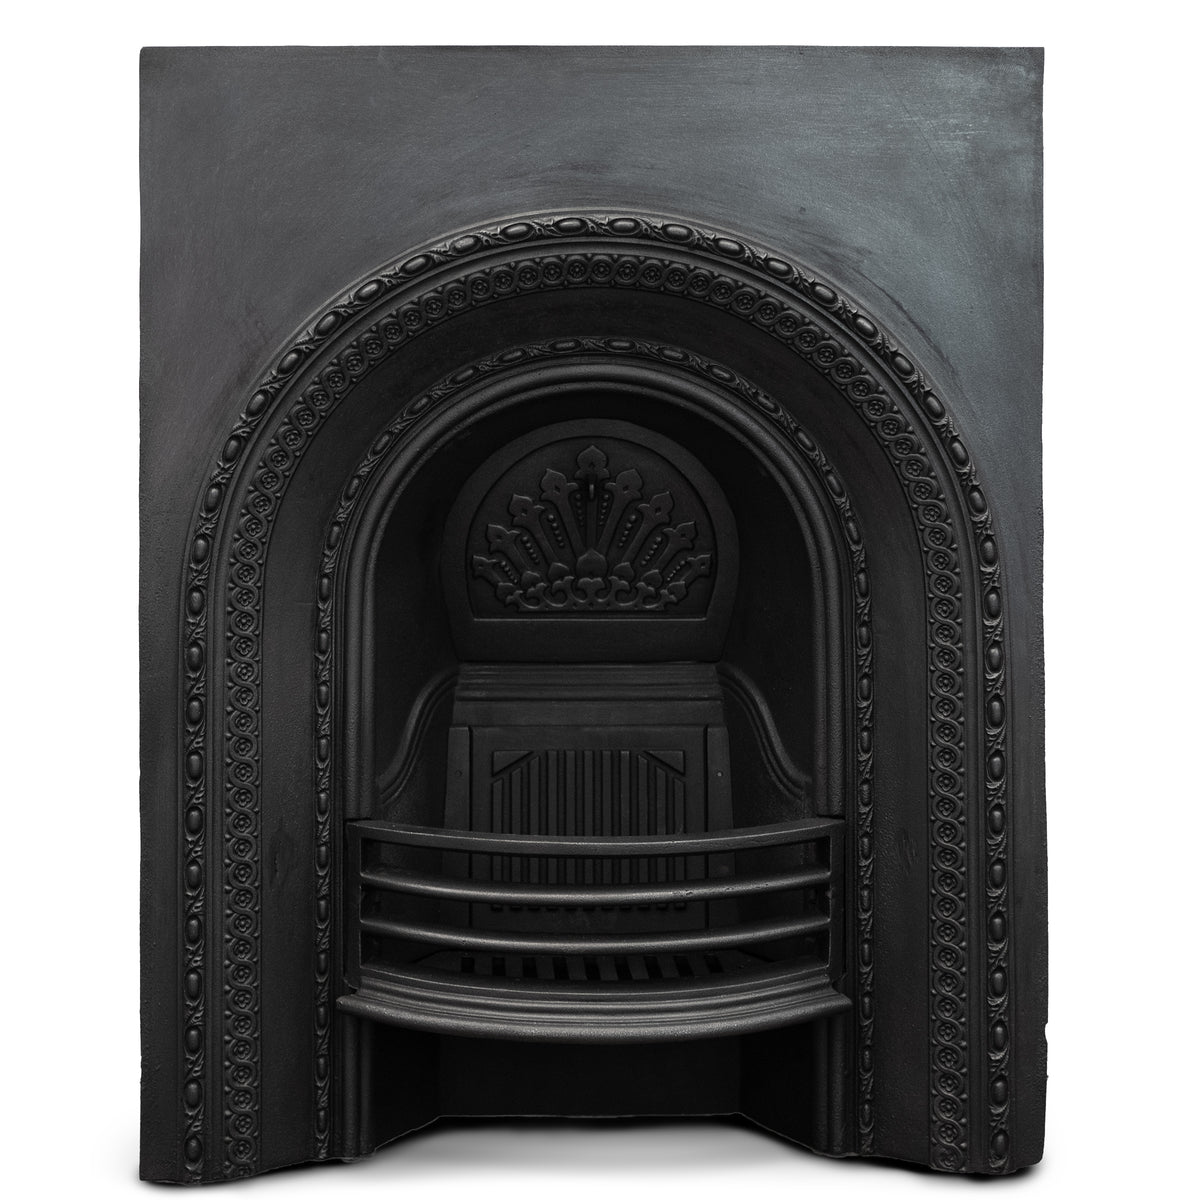 Antique Reclaimed Victorian Cast Iron Arched Insert | The Architectural Forum